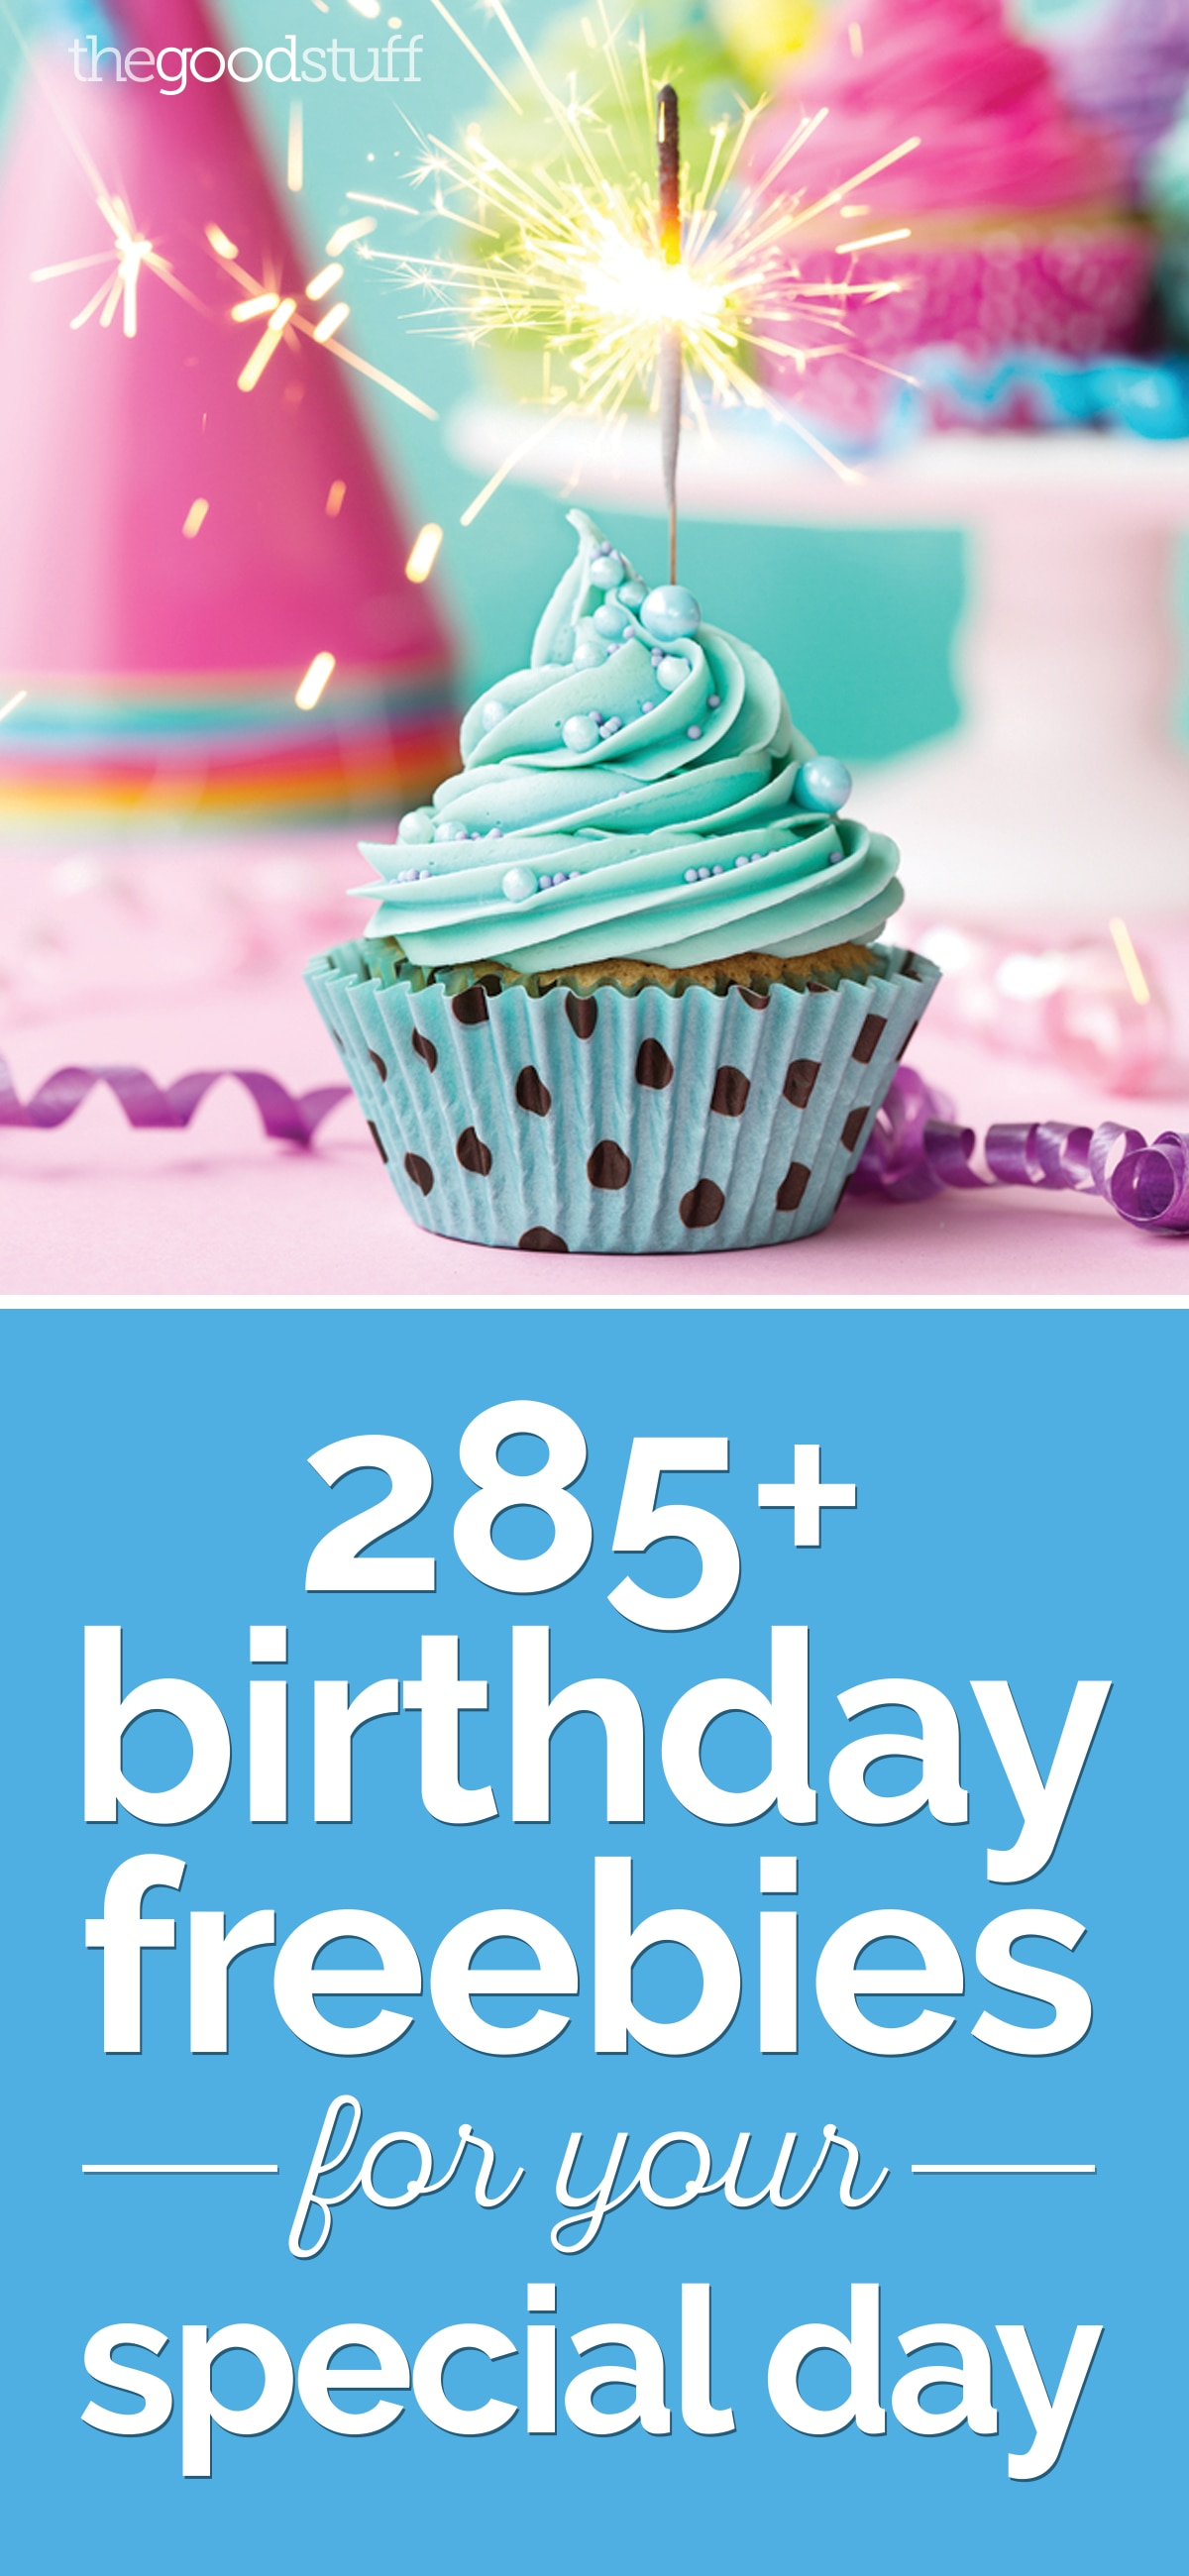 285+ Birthday Freebies for Your Special Day | thegoodstuff